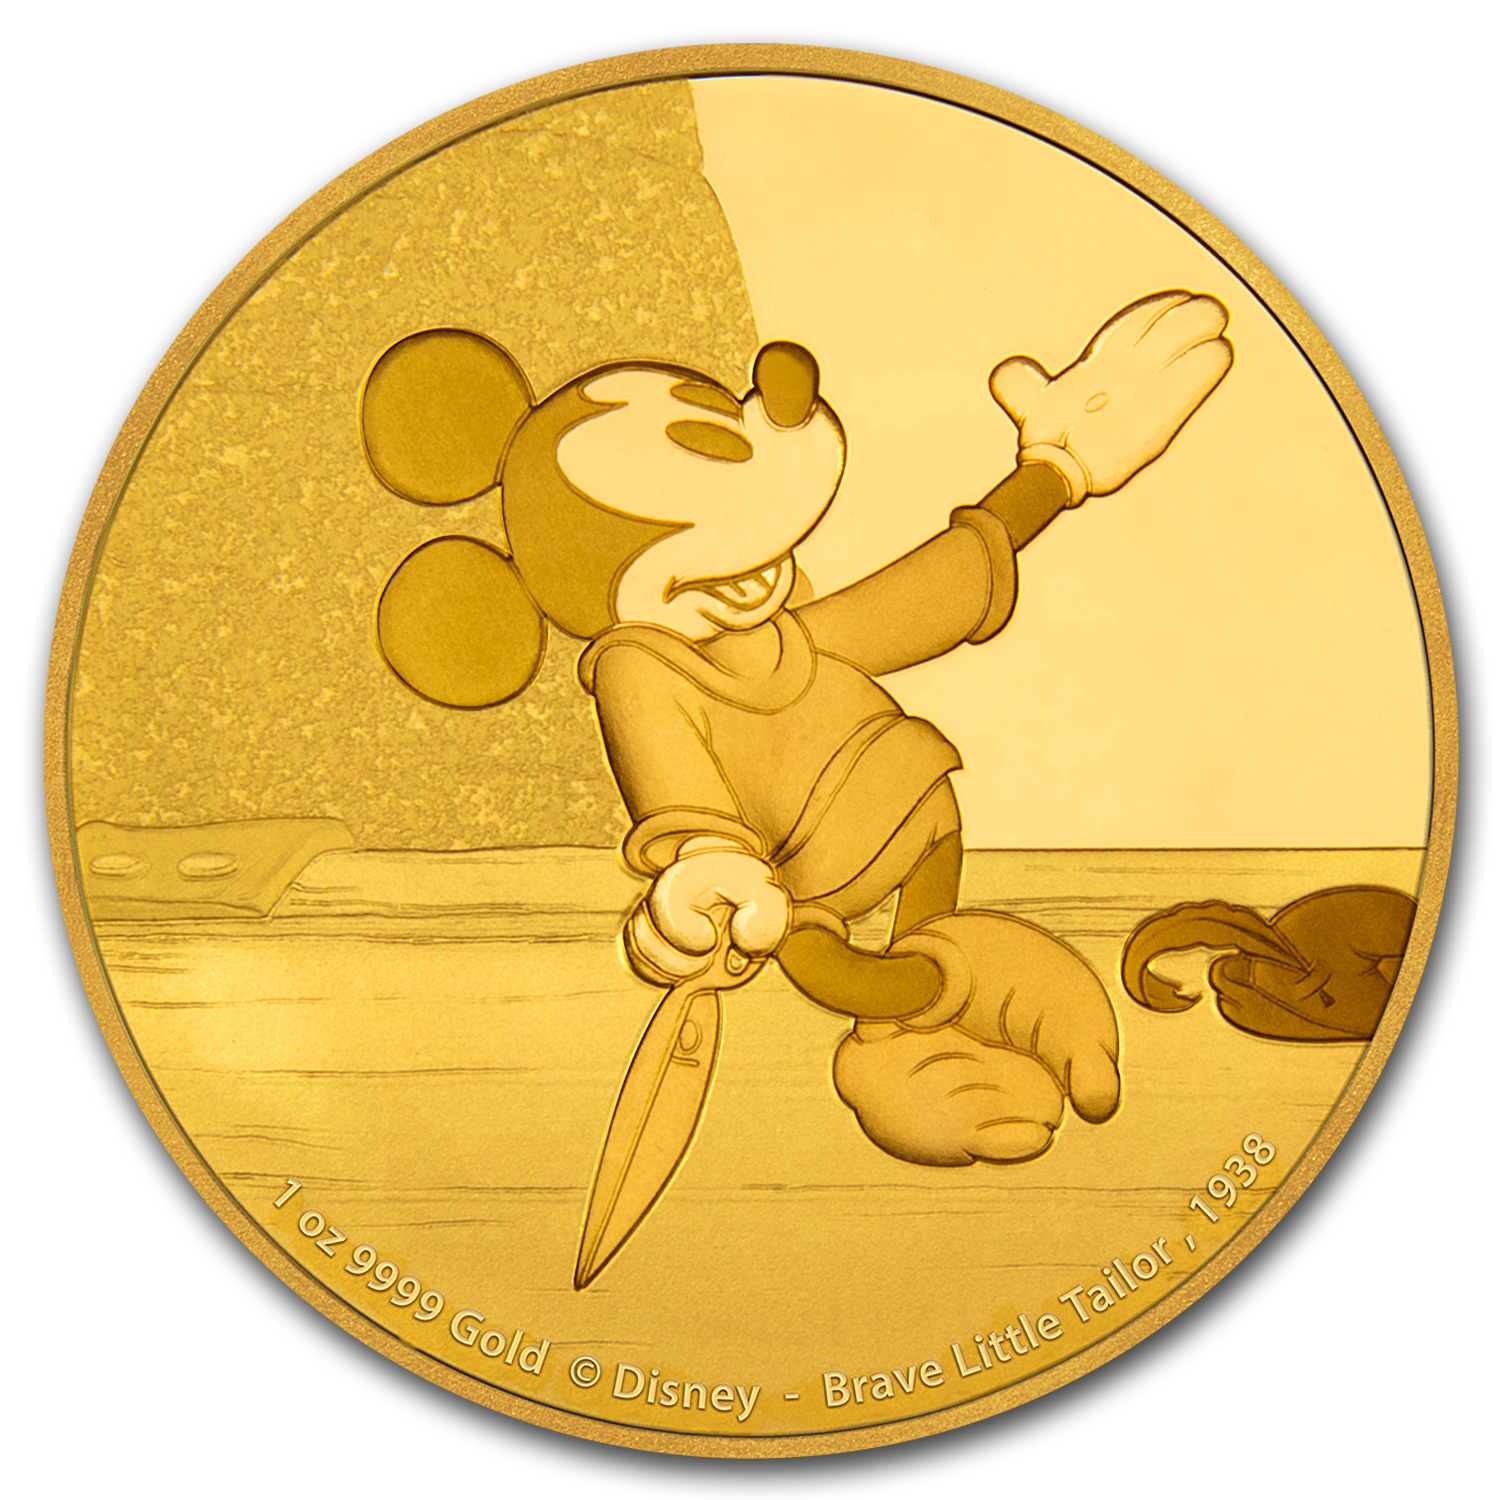 2016 1 oz Gold $250 Mickey Through the Ages: Brave Little Tailor